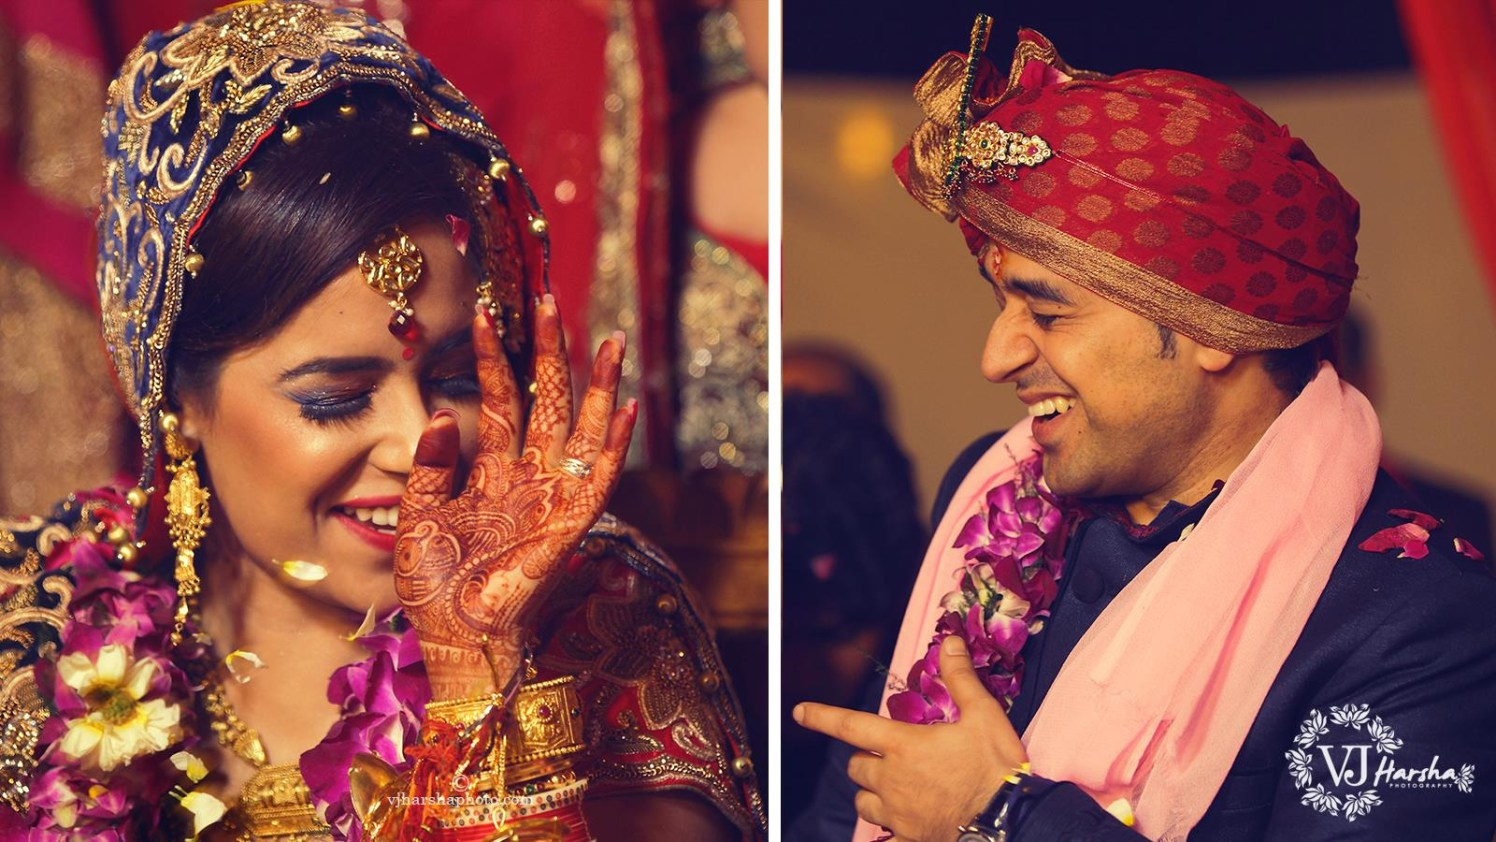 Candid shots of the Bride and Groom by Vjharsha Photography Wedding-photography | Weddings Photos & Ideas